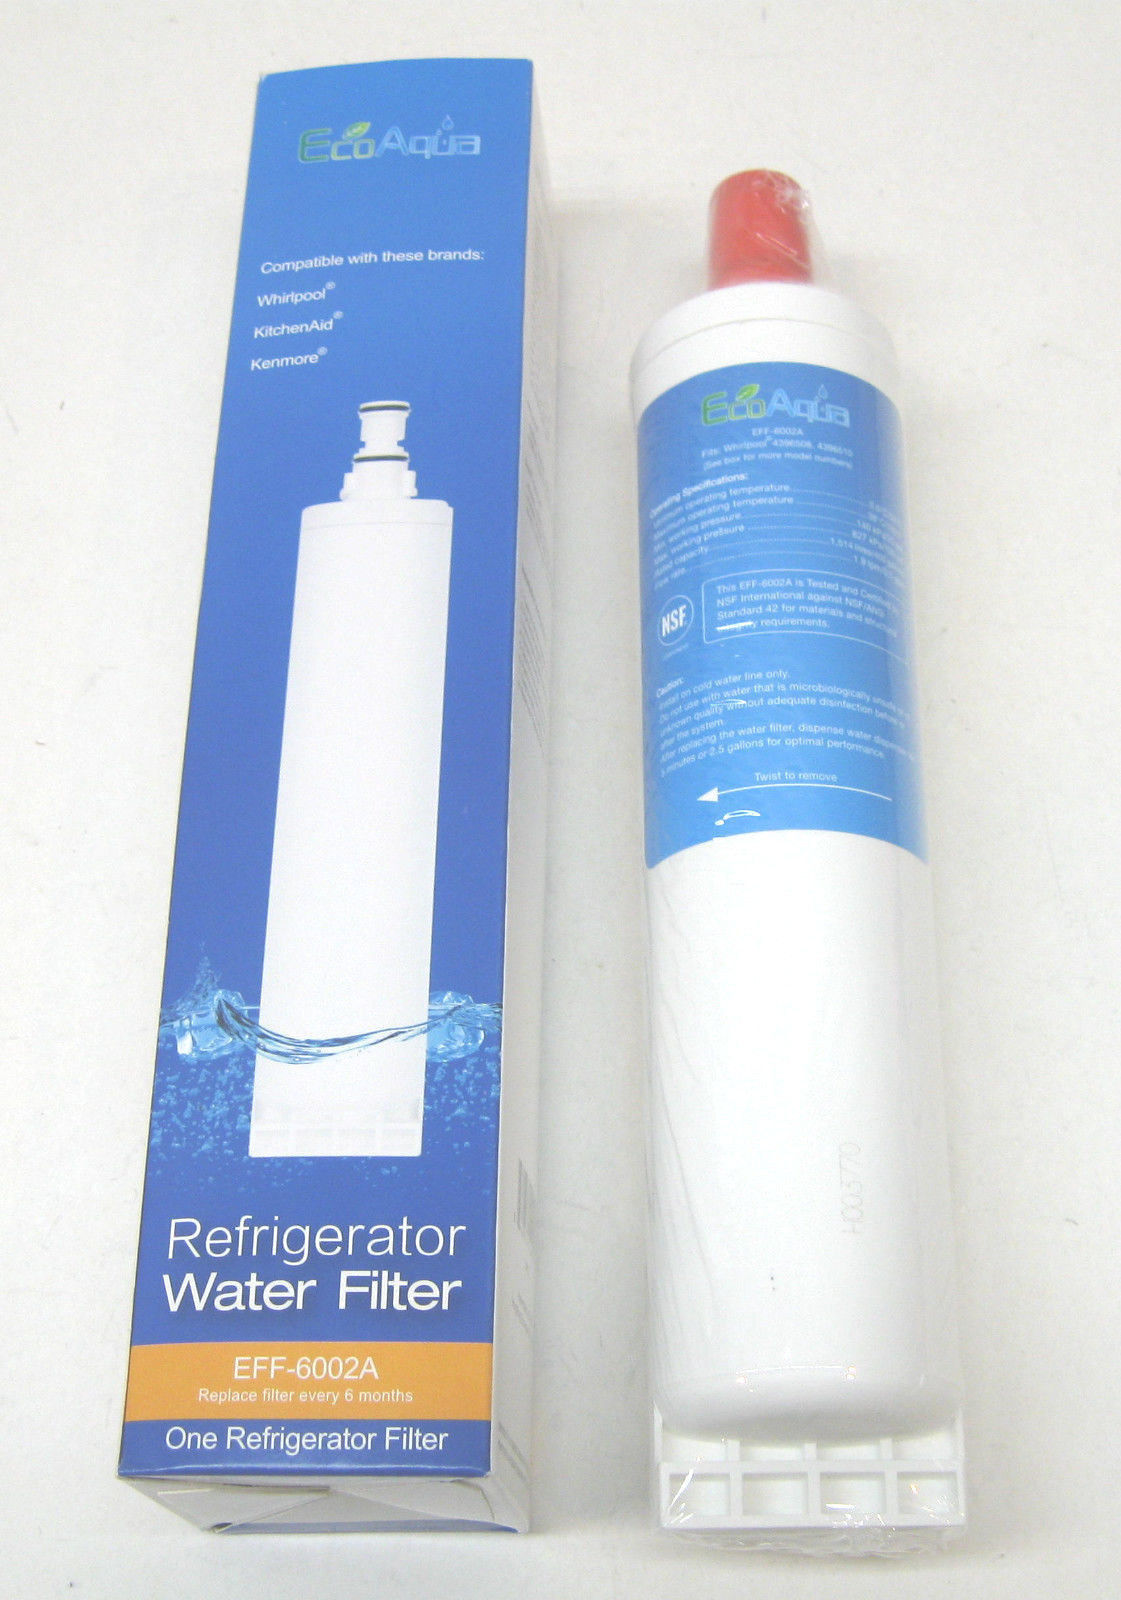 Eff 6002a Ecoaqua Refrigerator Water Filter For Whirlpool